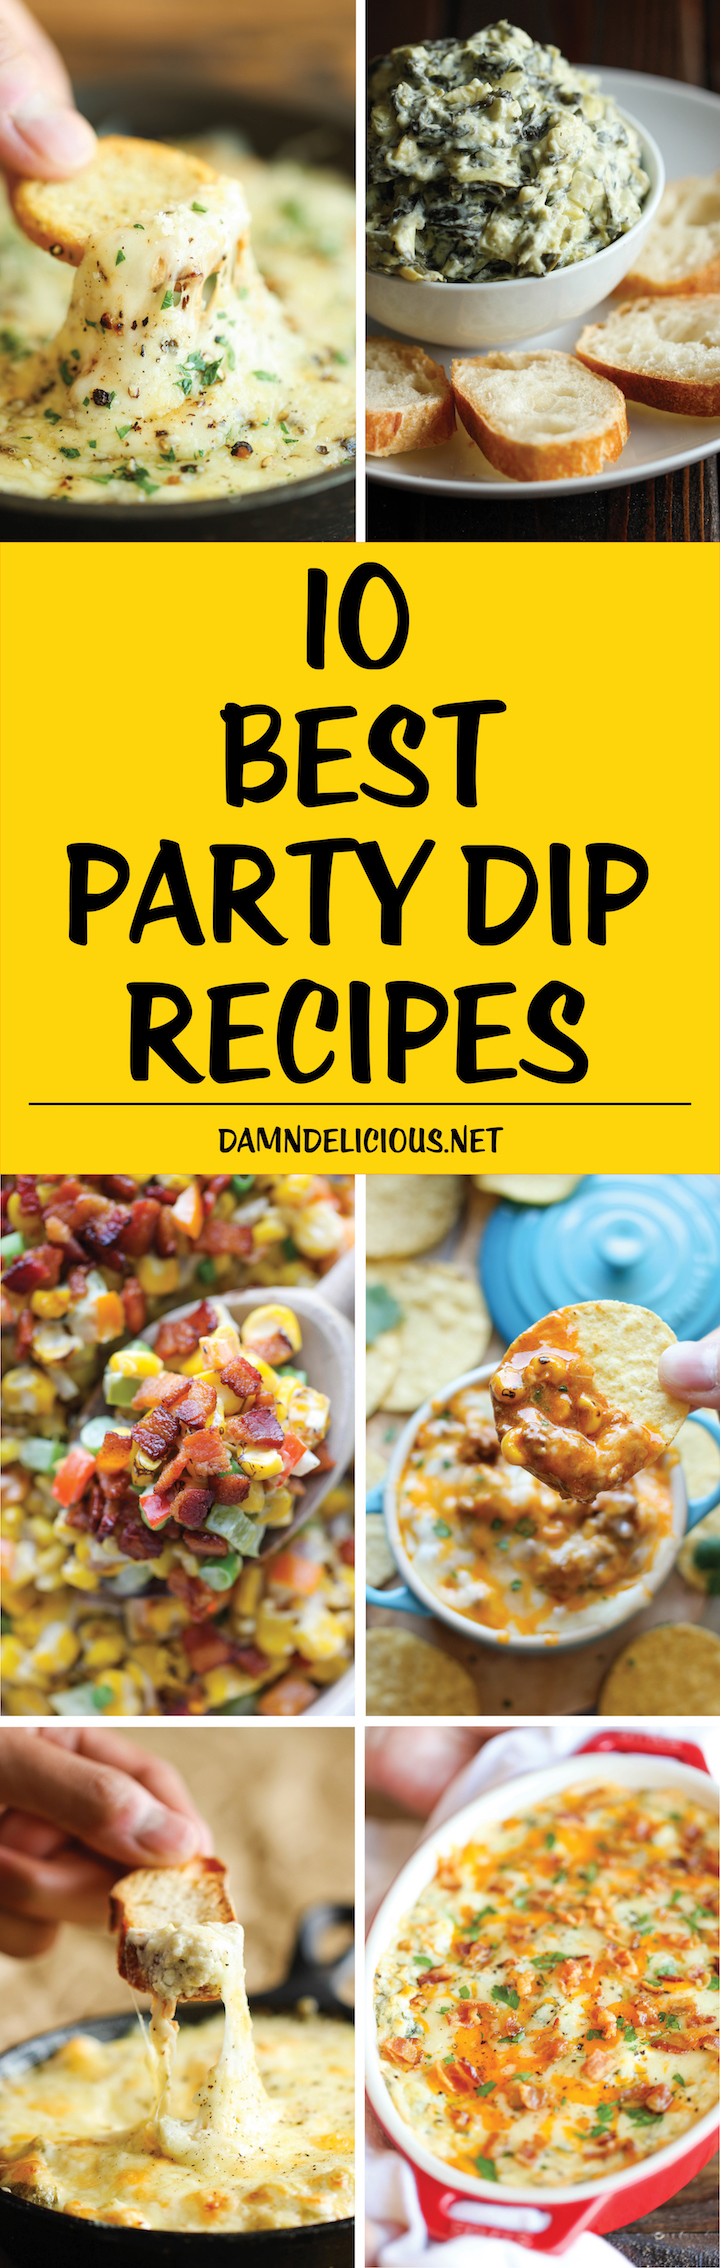 10 Best Party Dip Recipes - The absolute best and easiest cheesy, creamy dips for all your entertaining needs! Everyone will be begging for the recipes!